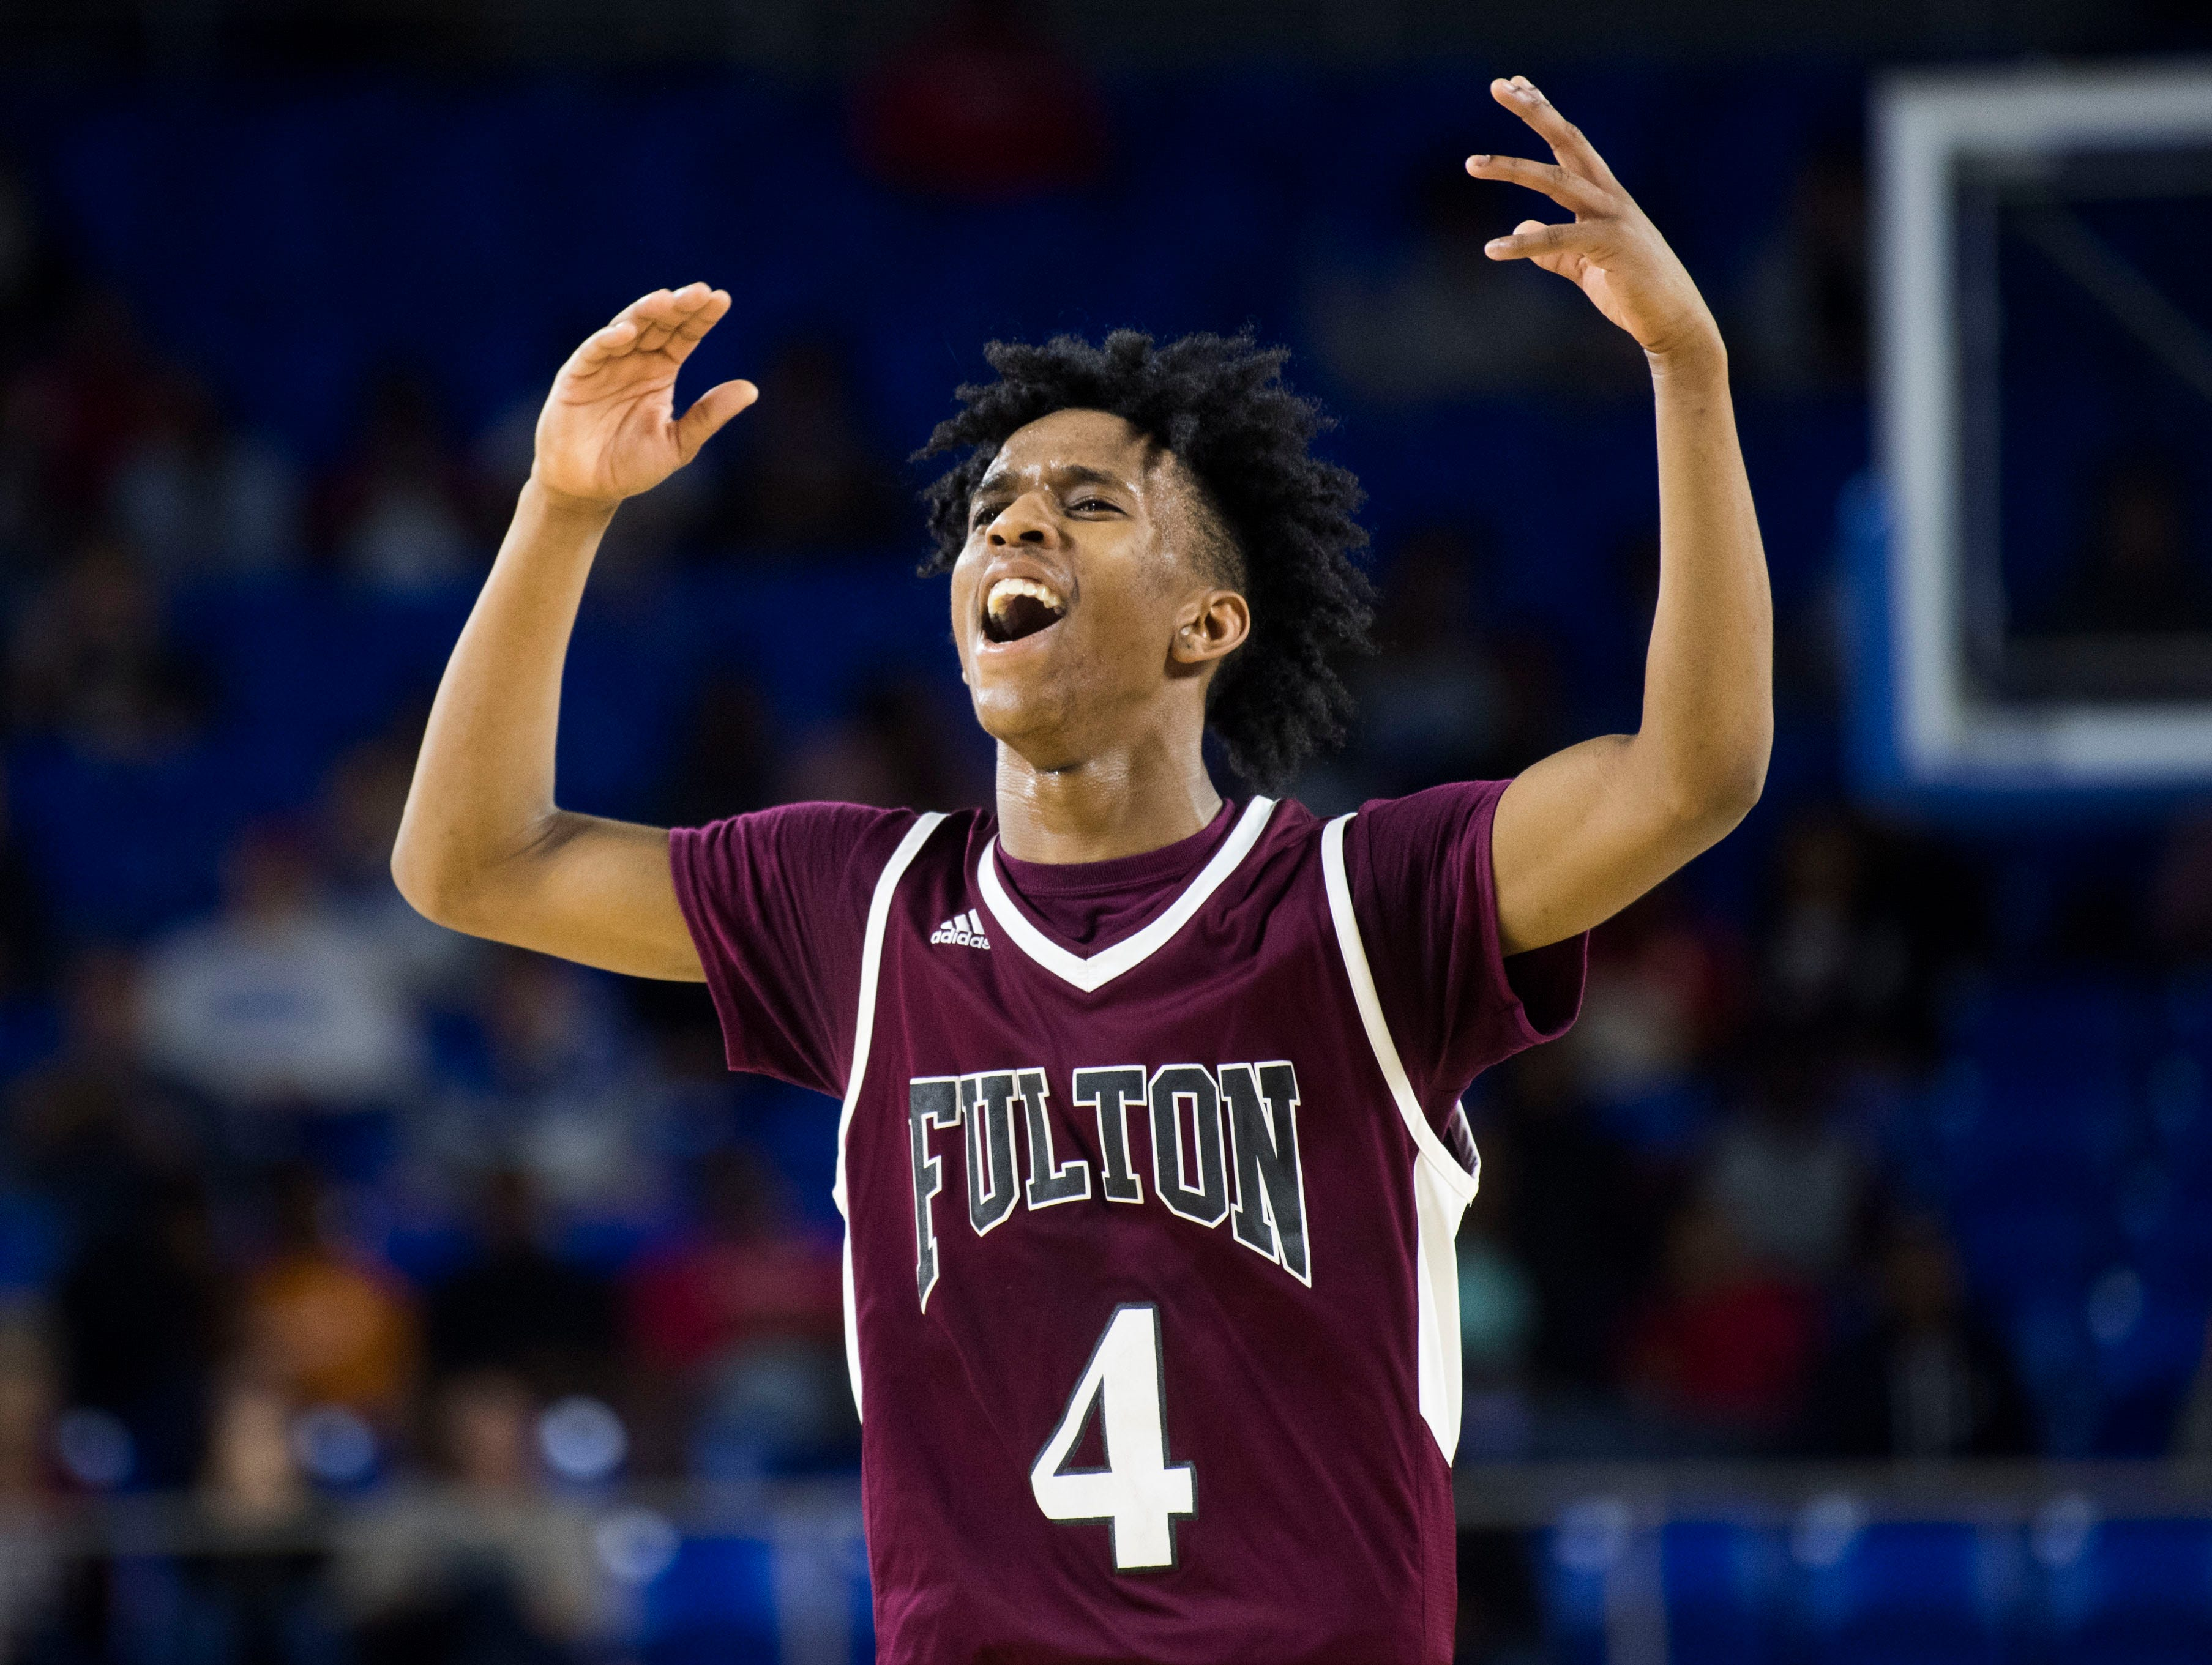 Fulton's Edward Lacy (4) reacts during a TSSAA AA state semifinal game between East Nashville and Fulton at the Murphy Center in Murfreesboro, Friday, March 15, 2019. Fulton defeated East Nashville 66-55.